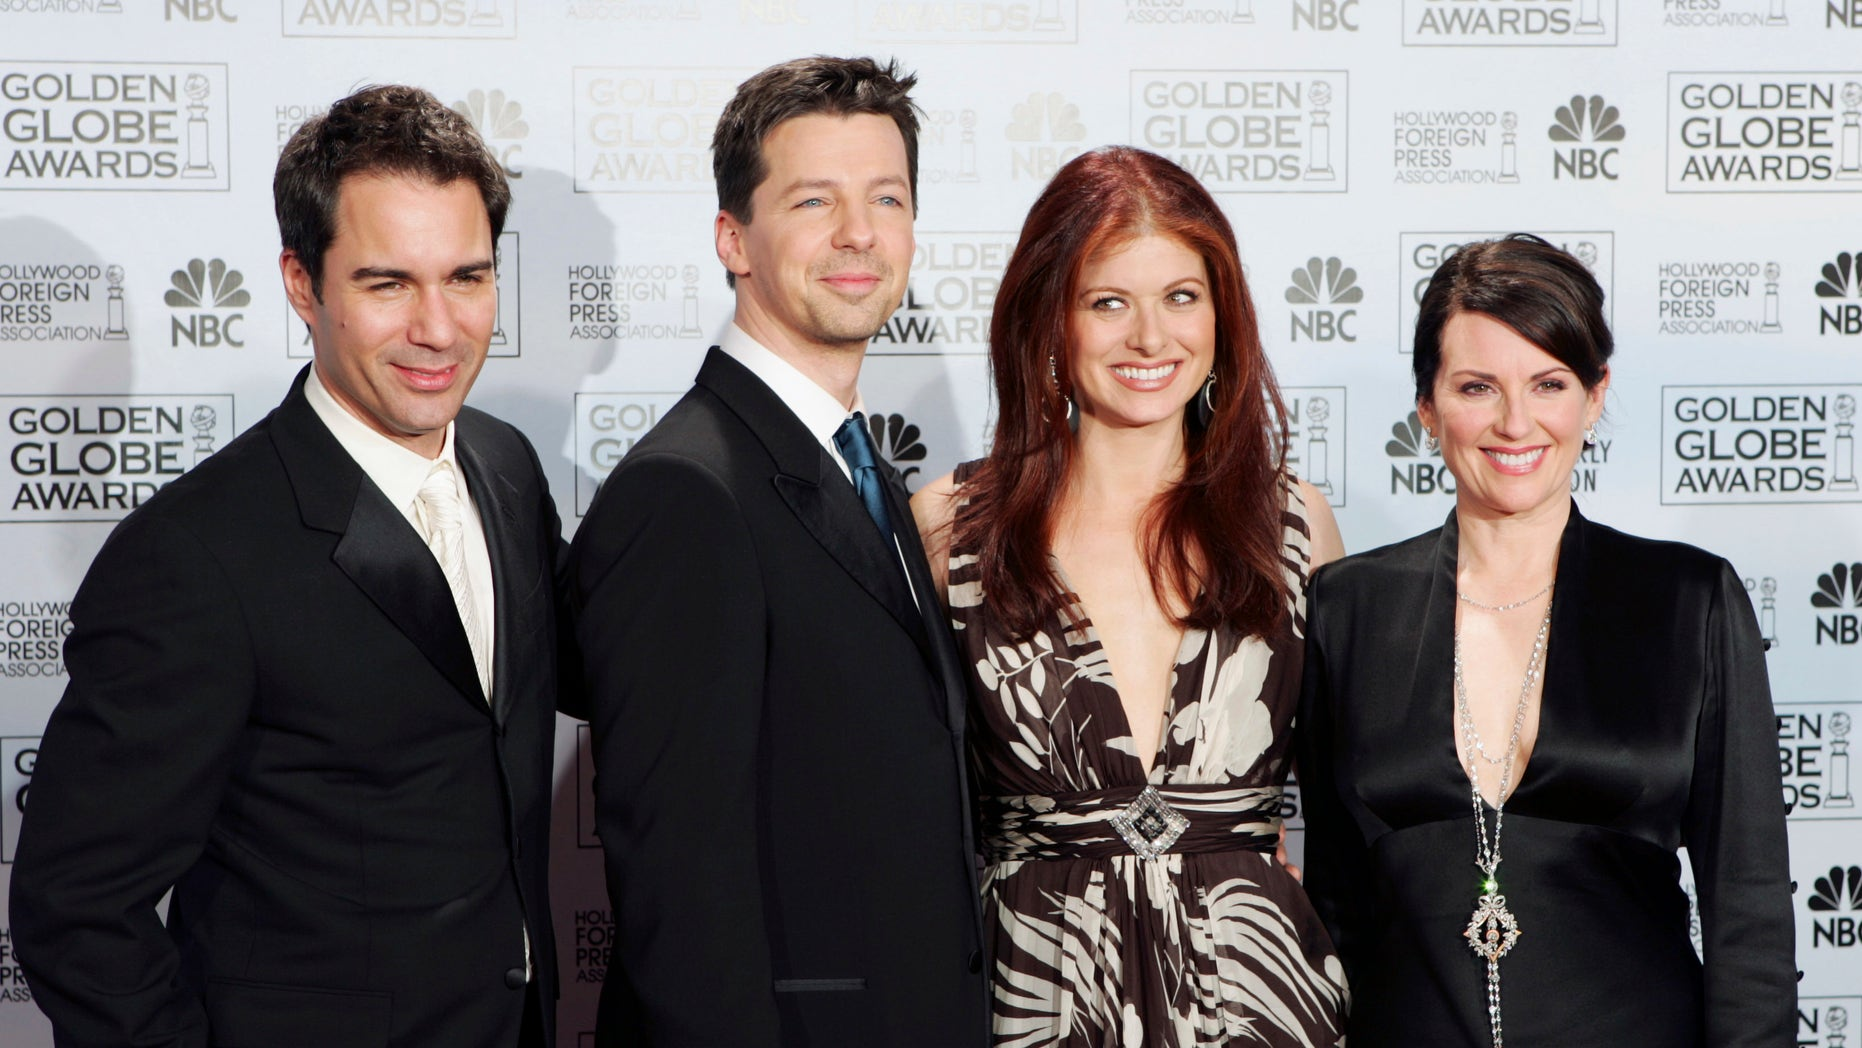 """In this Jan. 16, 2006 file photo, cast members from the comedy series """"Will & Grace,"""" from left, Eric McCormack, Sean Hayes, Debra Messing and Megan Mullally, pose backstage after making an award presentation at the 63rd Annual Golden Globe Awards in Beverly Hills, Calif."""